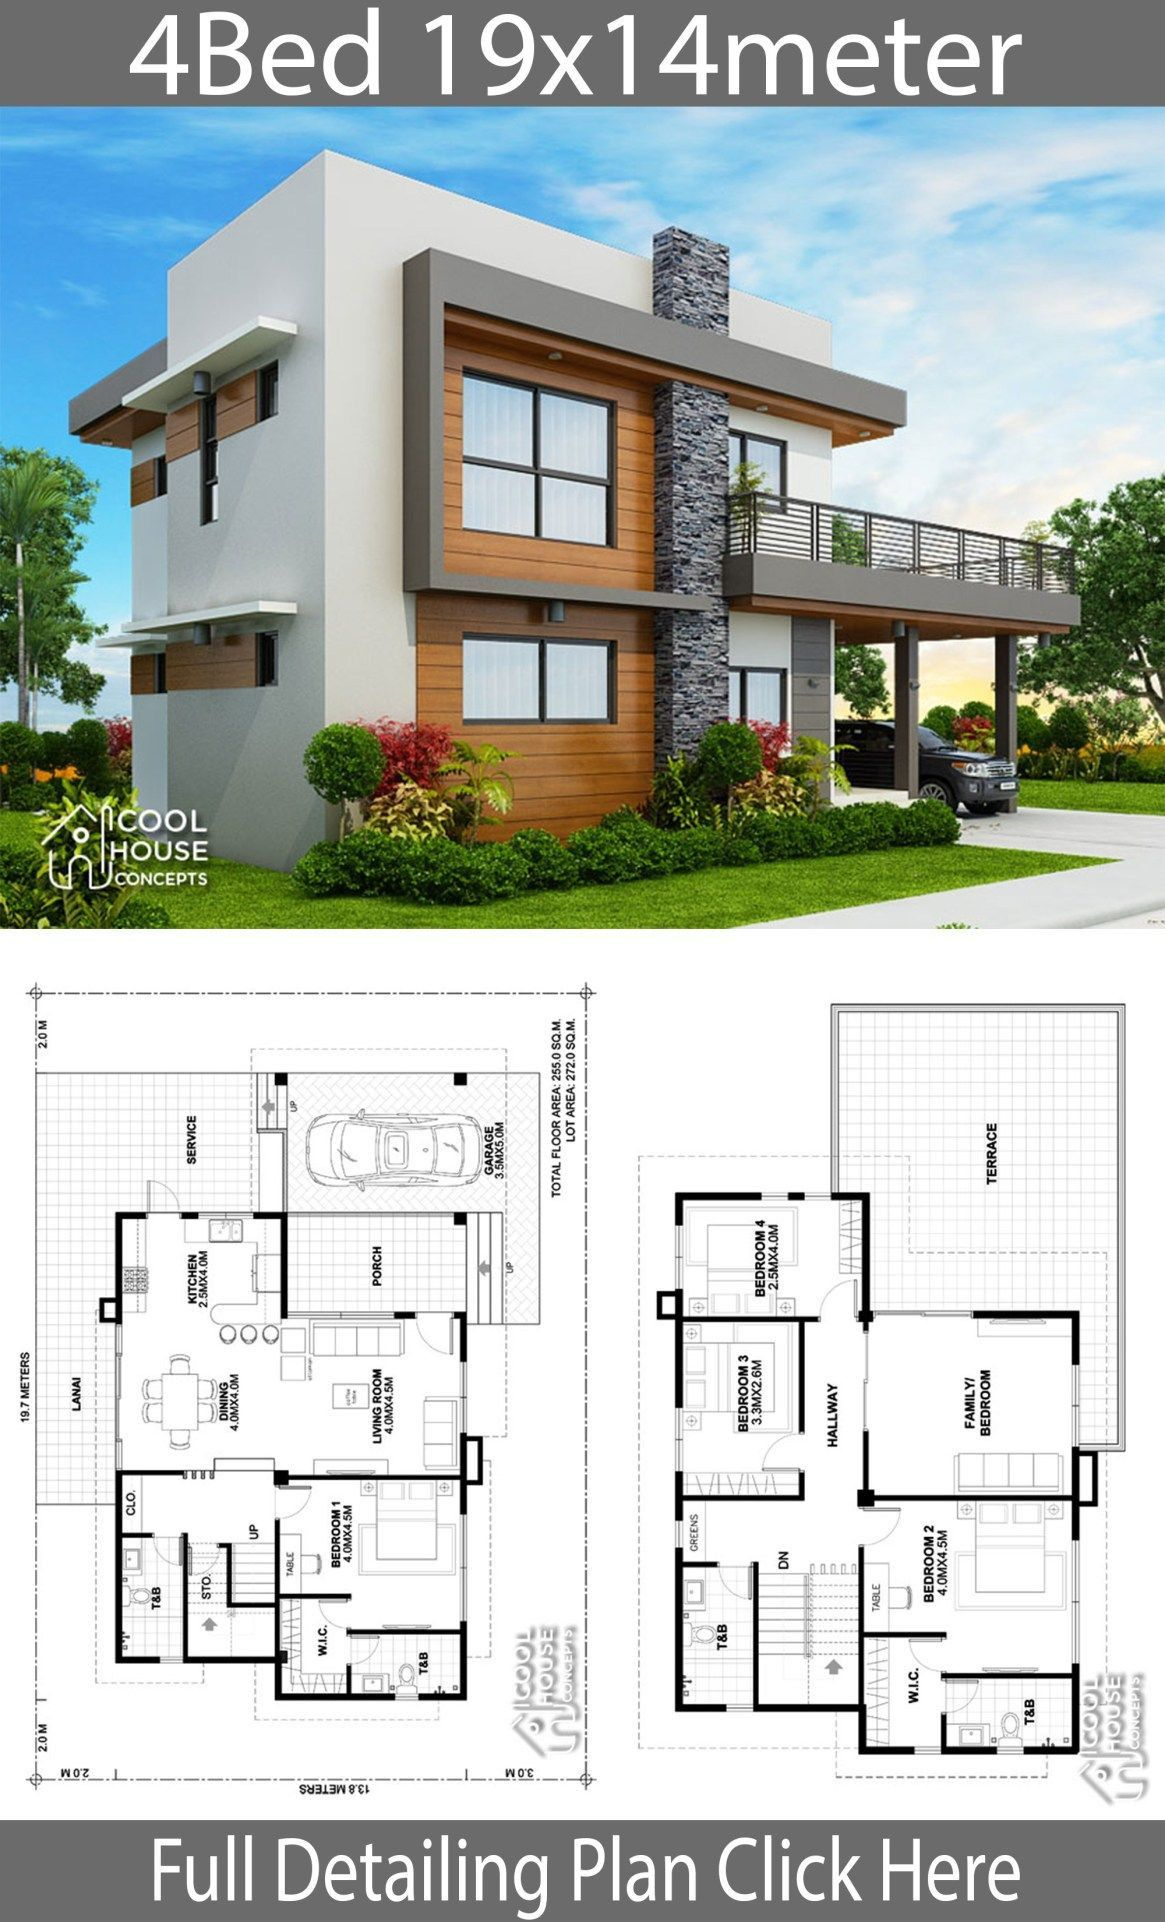 4 Bedroom House Designs 2020 4 Bedroom House Designs Beautiful House Plans Duplex House Design